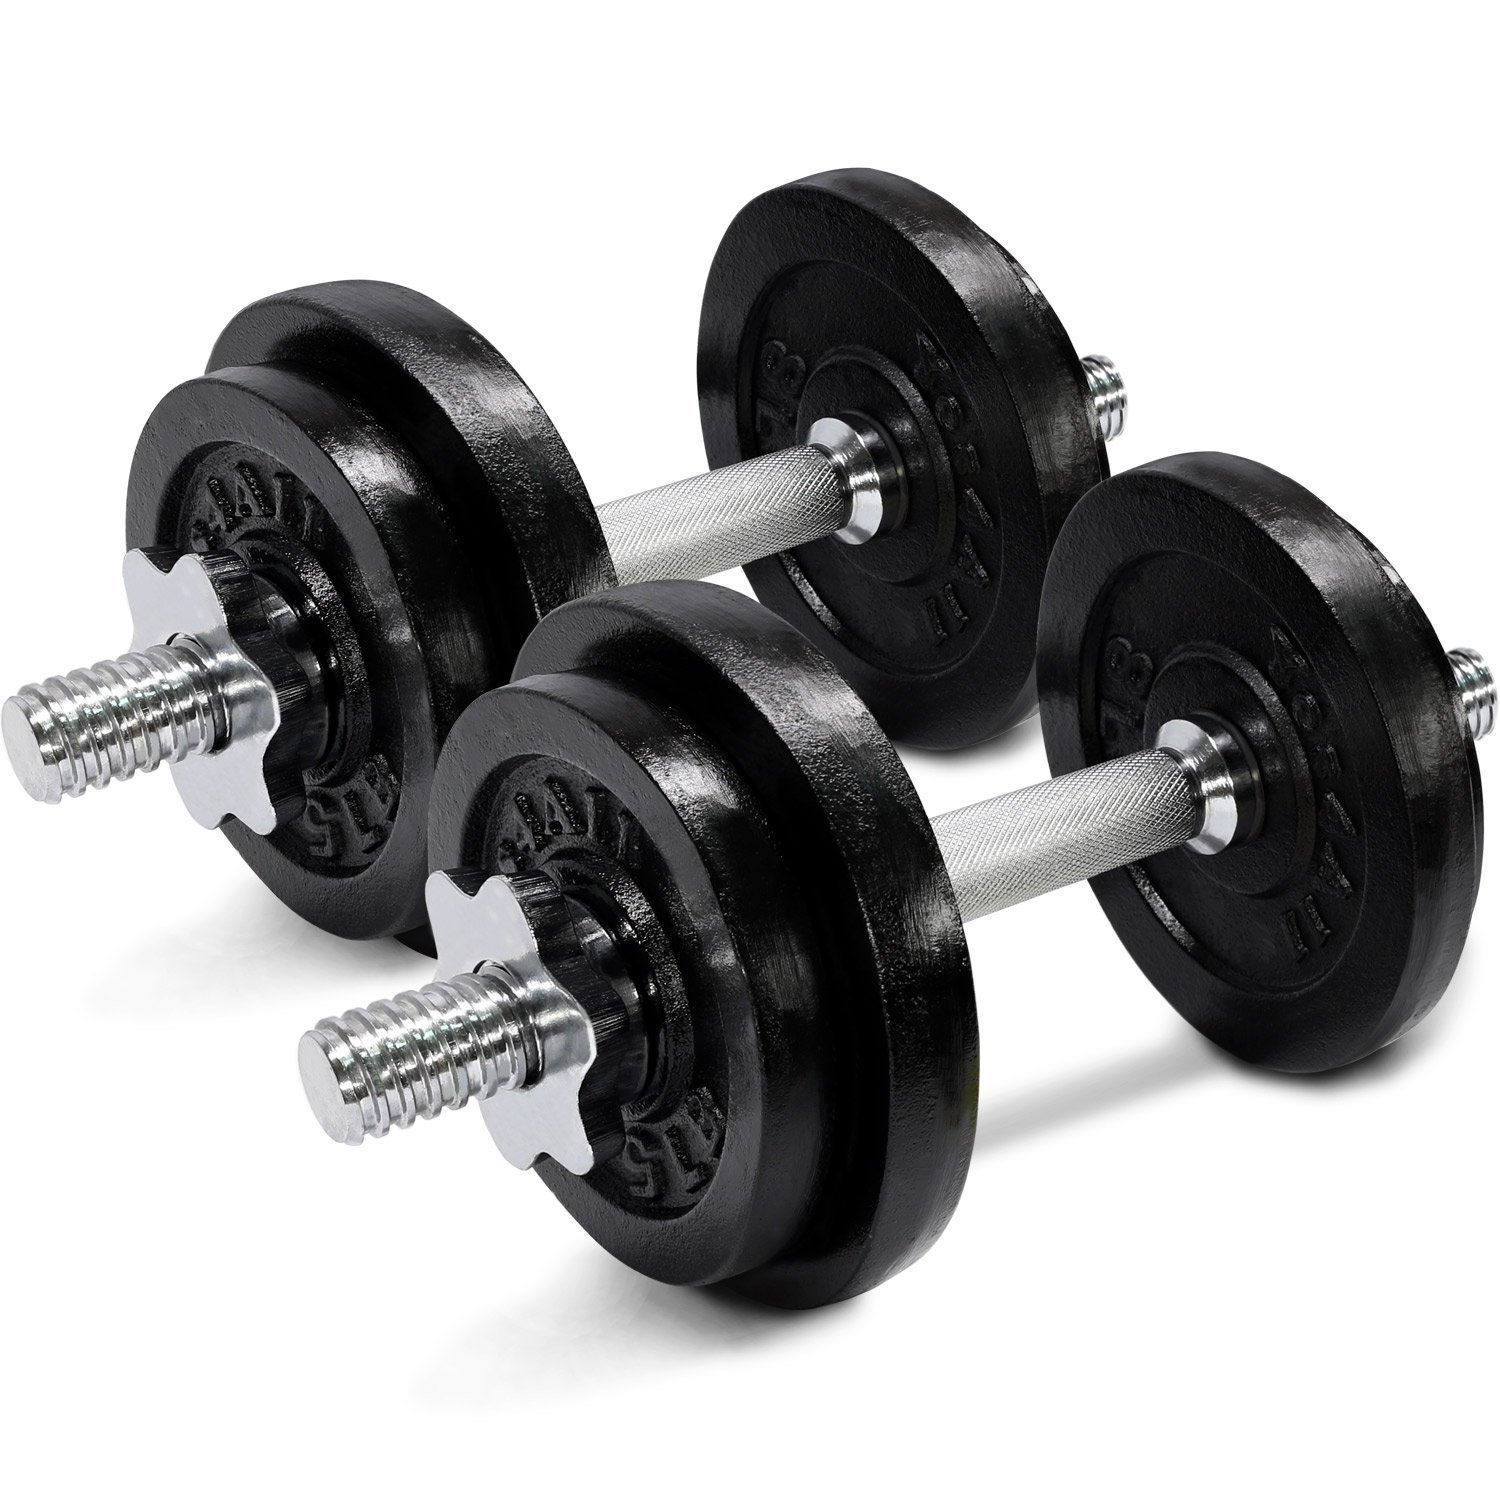 Dumbbell Set Up To 50: 40 Pound Adjustable Dumbbells Set Exercise Workout Weight